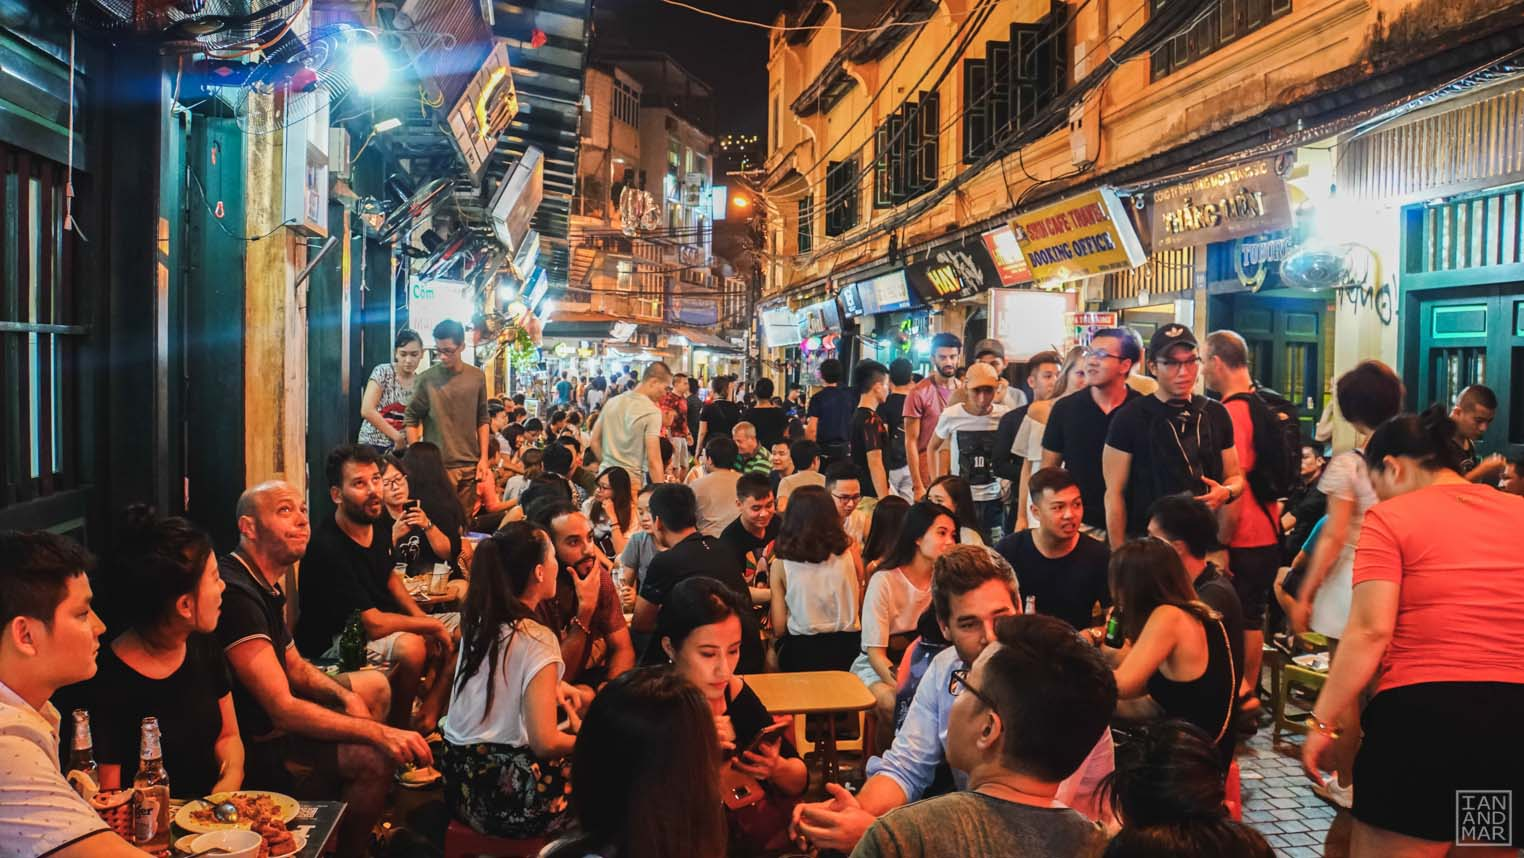 street filled with people drinking at night